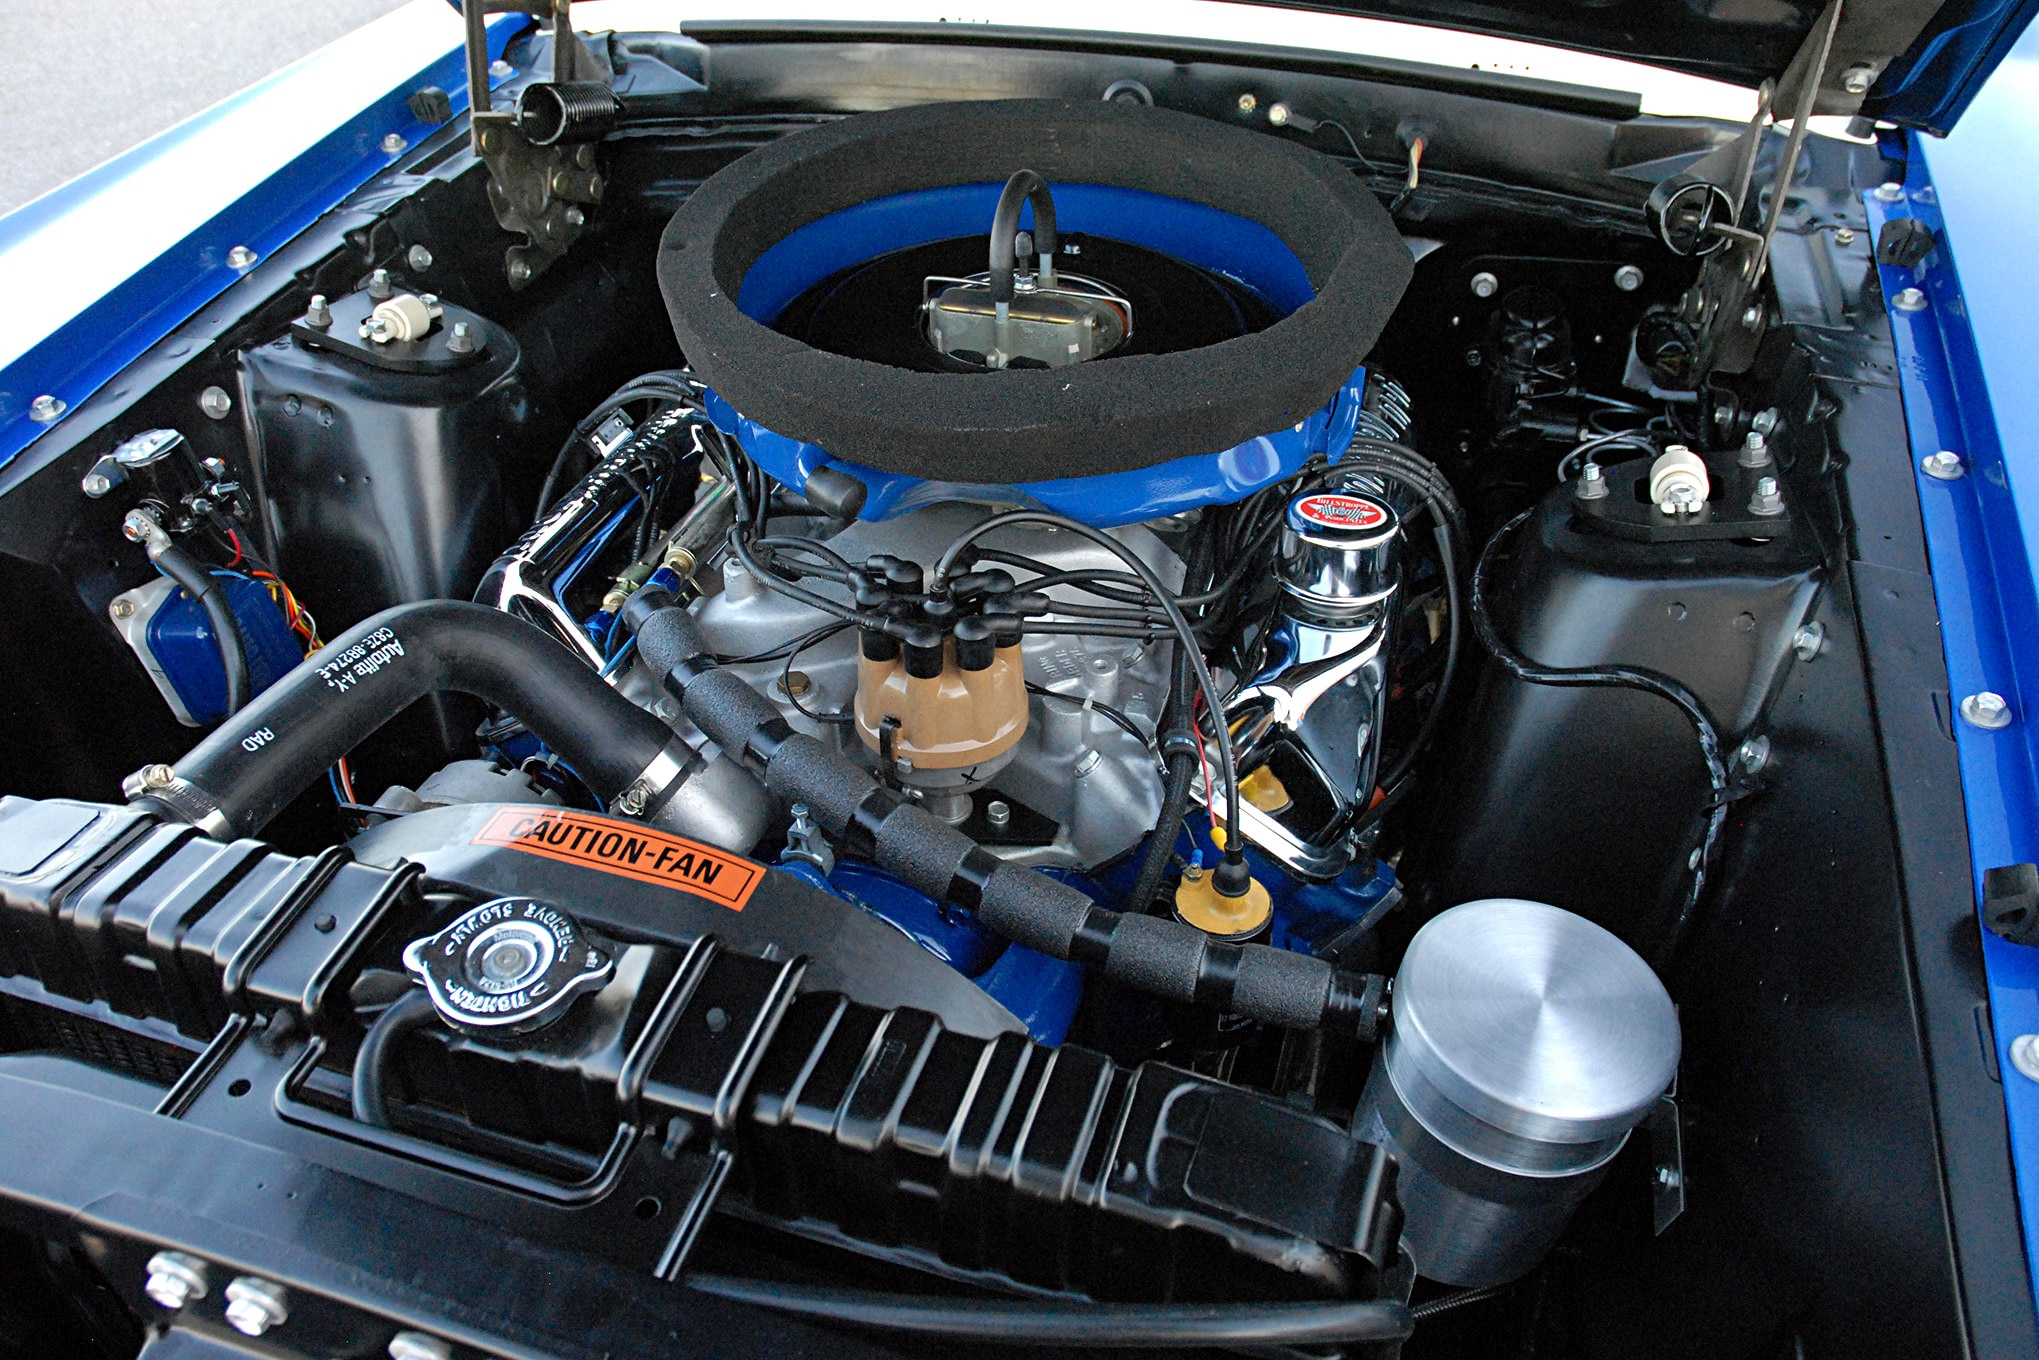 The 428 CJ engine that came with the Mustang was gone two weeks after the car left Foulger Ford, says Gary Schwartz. Now underhood is a Dwight Powell–assembled, 10.7:1 compression 428 CJ outfitted with only the best N.O.S. Ford high-performance parts available.